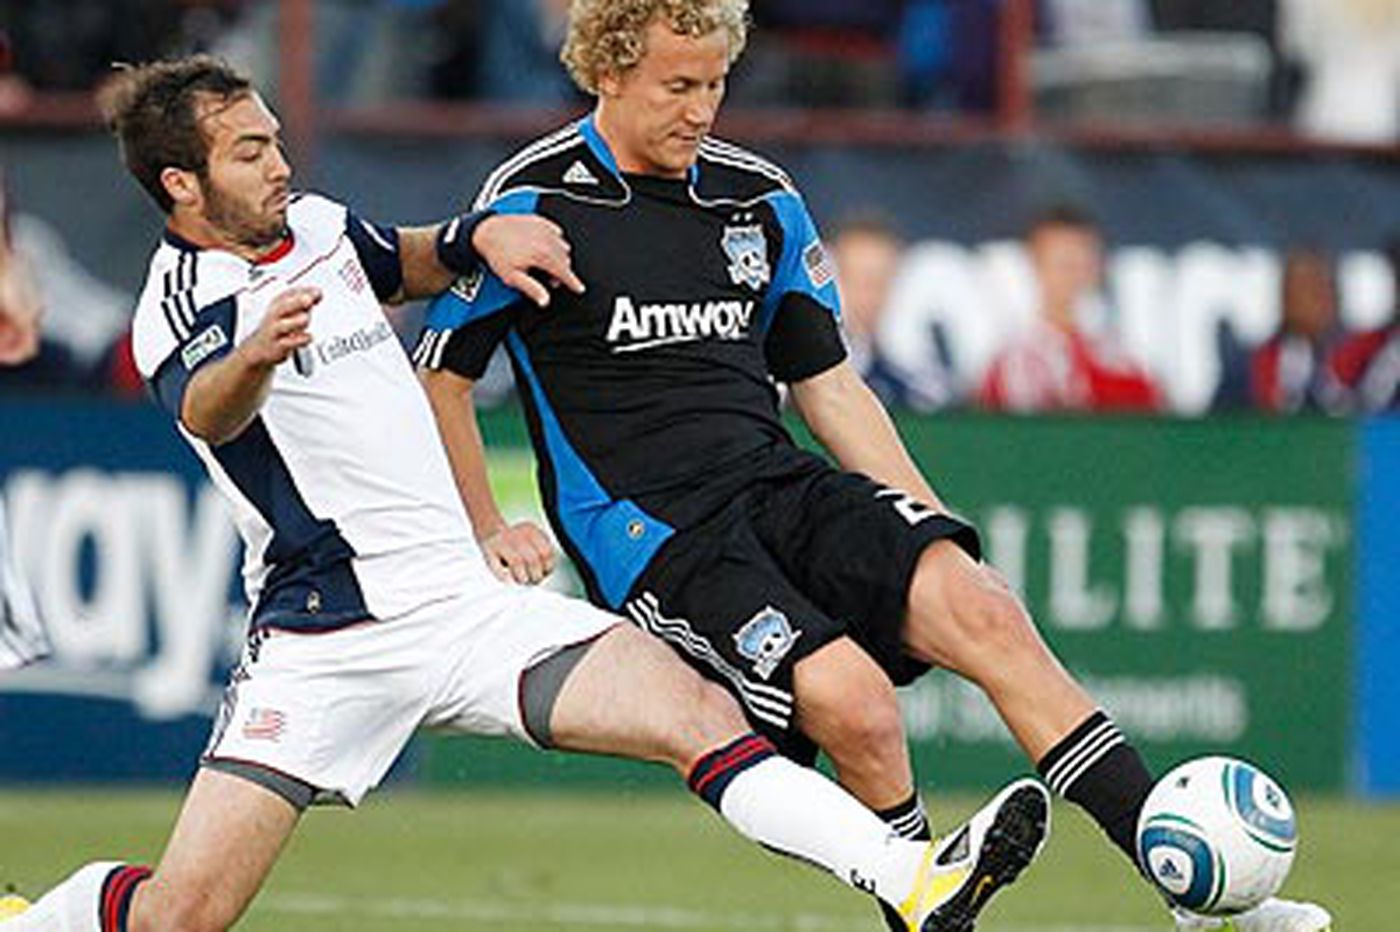 Soccer Report: Lenhart's hat trick leads Earthquakes over D.C. United